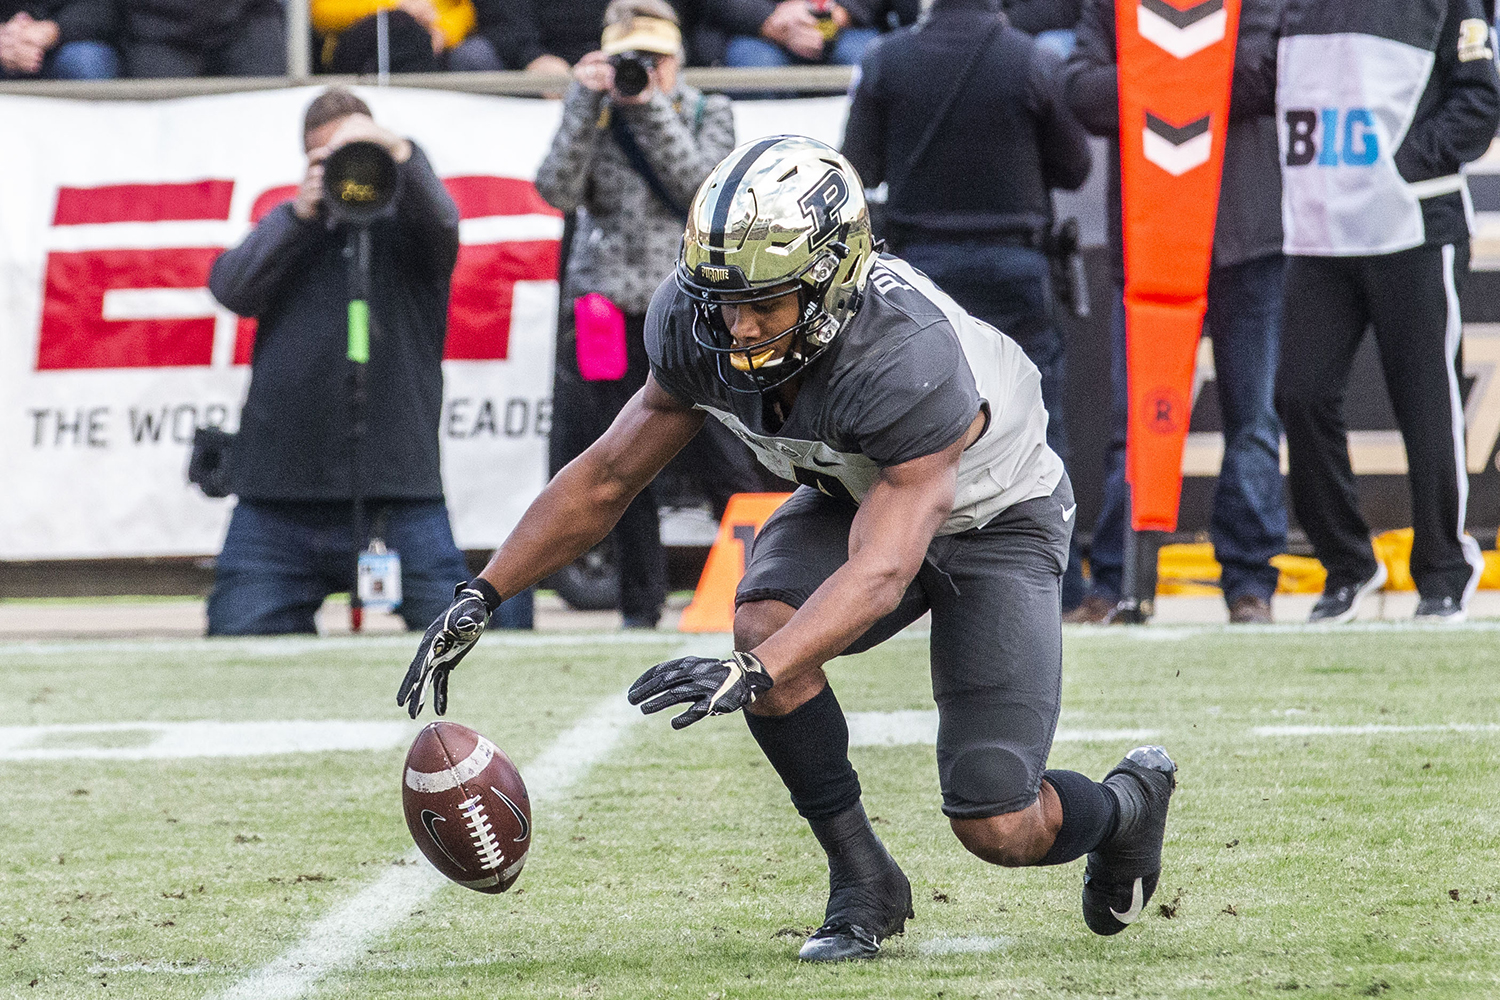 Purdue+wide+receiver+Rondale+Moore+fumbles+the+ballduring+the+Iowa%2FPurdue+game+at+Ross-Ade+Stadium+in+West+Lafayette%2C+Ind.+on+Saturday%2C+November+3%2C+2018.+The+Boilermakers+defeated+the+Hawkeyes+38-36.